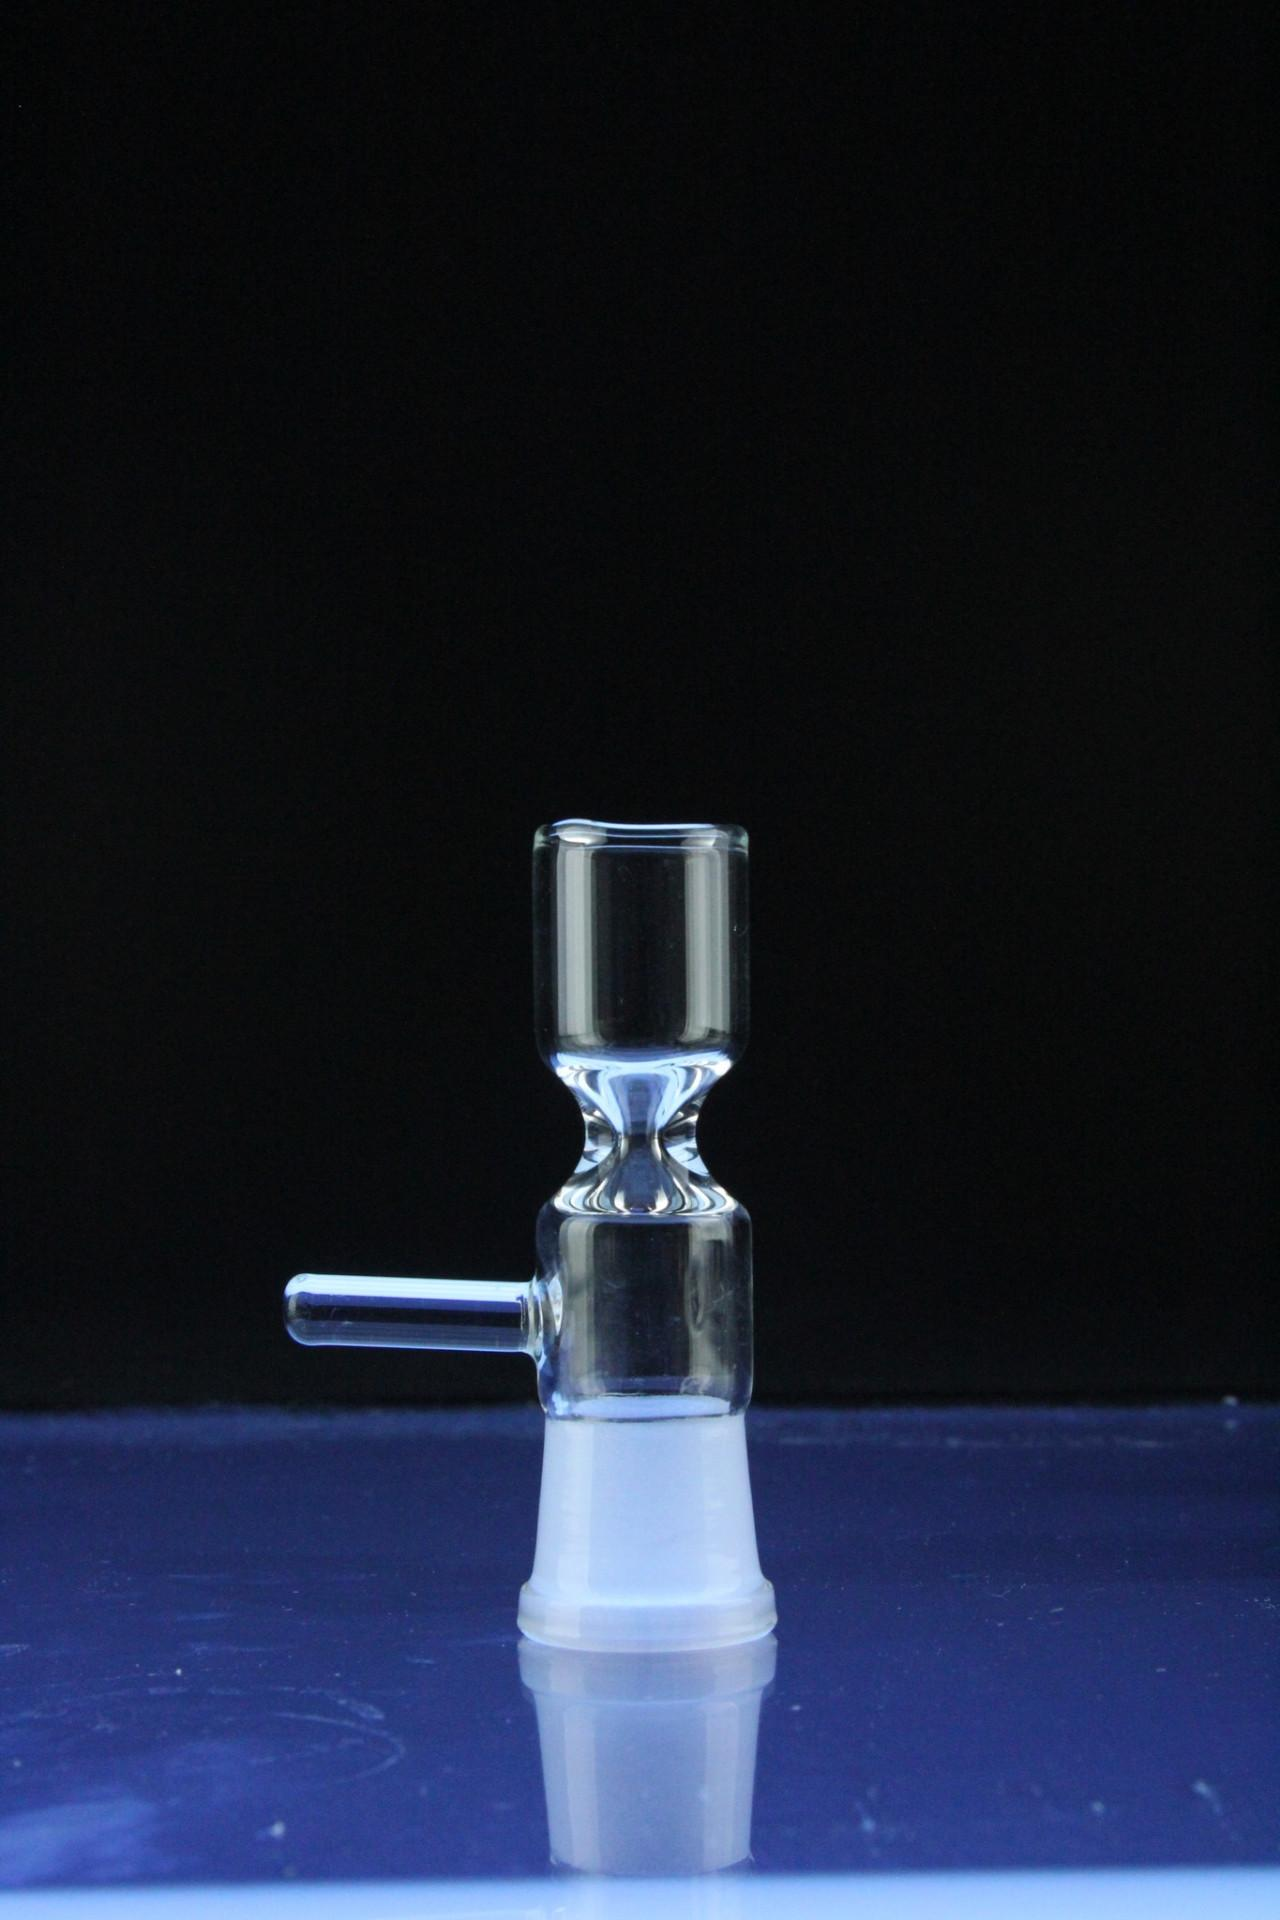 Super 14mm 19mm Female Glass Pinch Bowl Reversible bowl with Handle 14.5mm 18.8mm Joint Size for Glass Bong Ashcatcher Glass Bowl